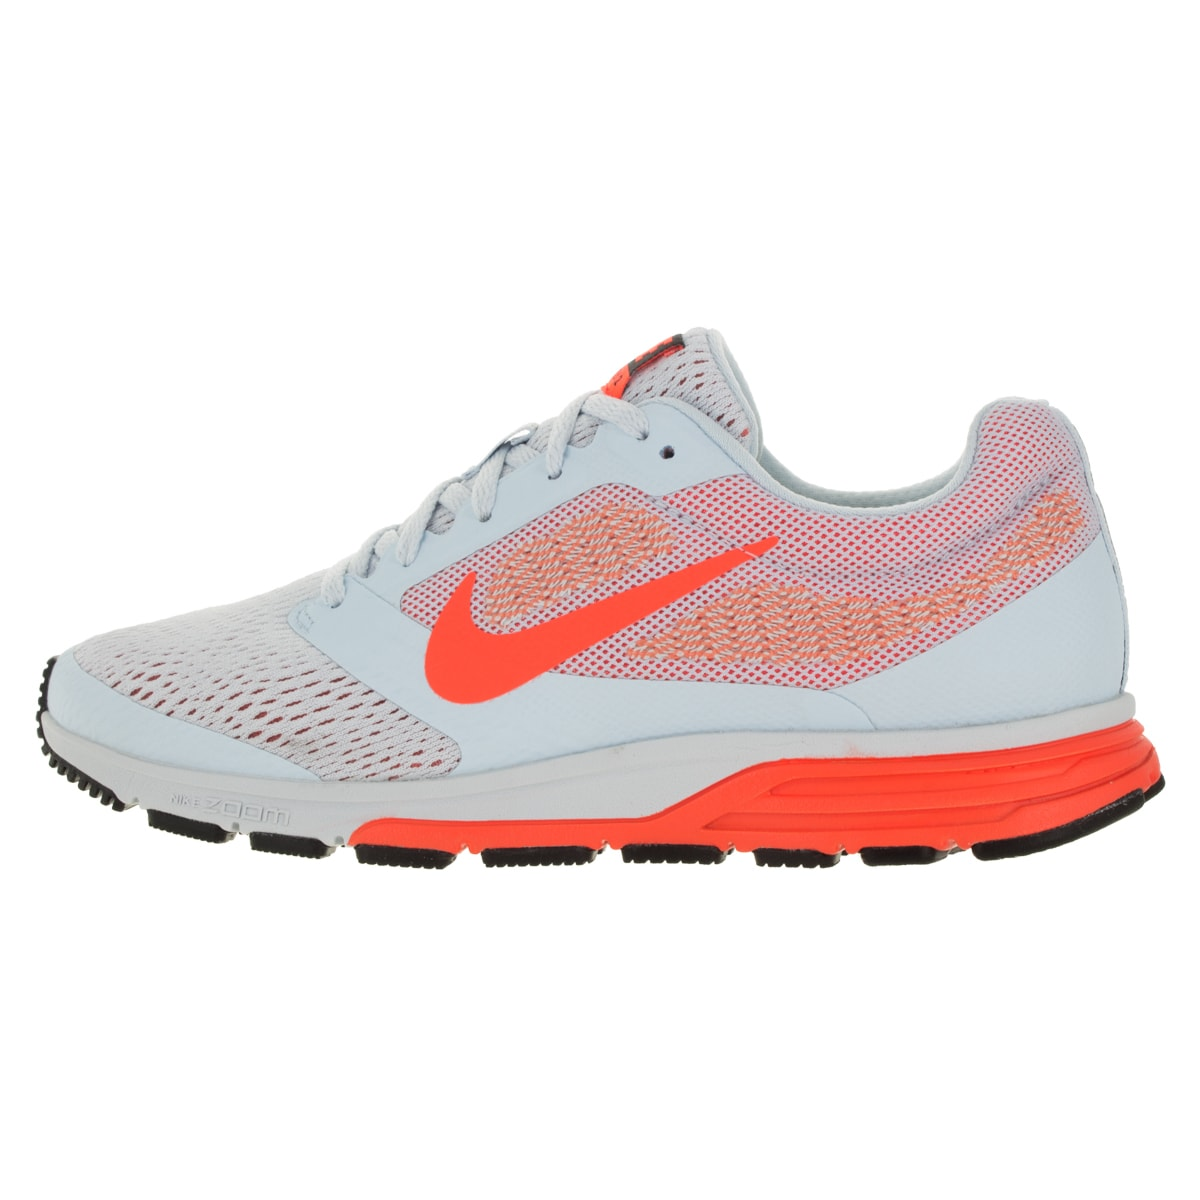 Nike Women's Air Zoom Fly 2 Blue Tint/ Orange/Atmc Pink Running Shoe - Free  Shipping Today - Overstock.com - 19154163